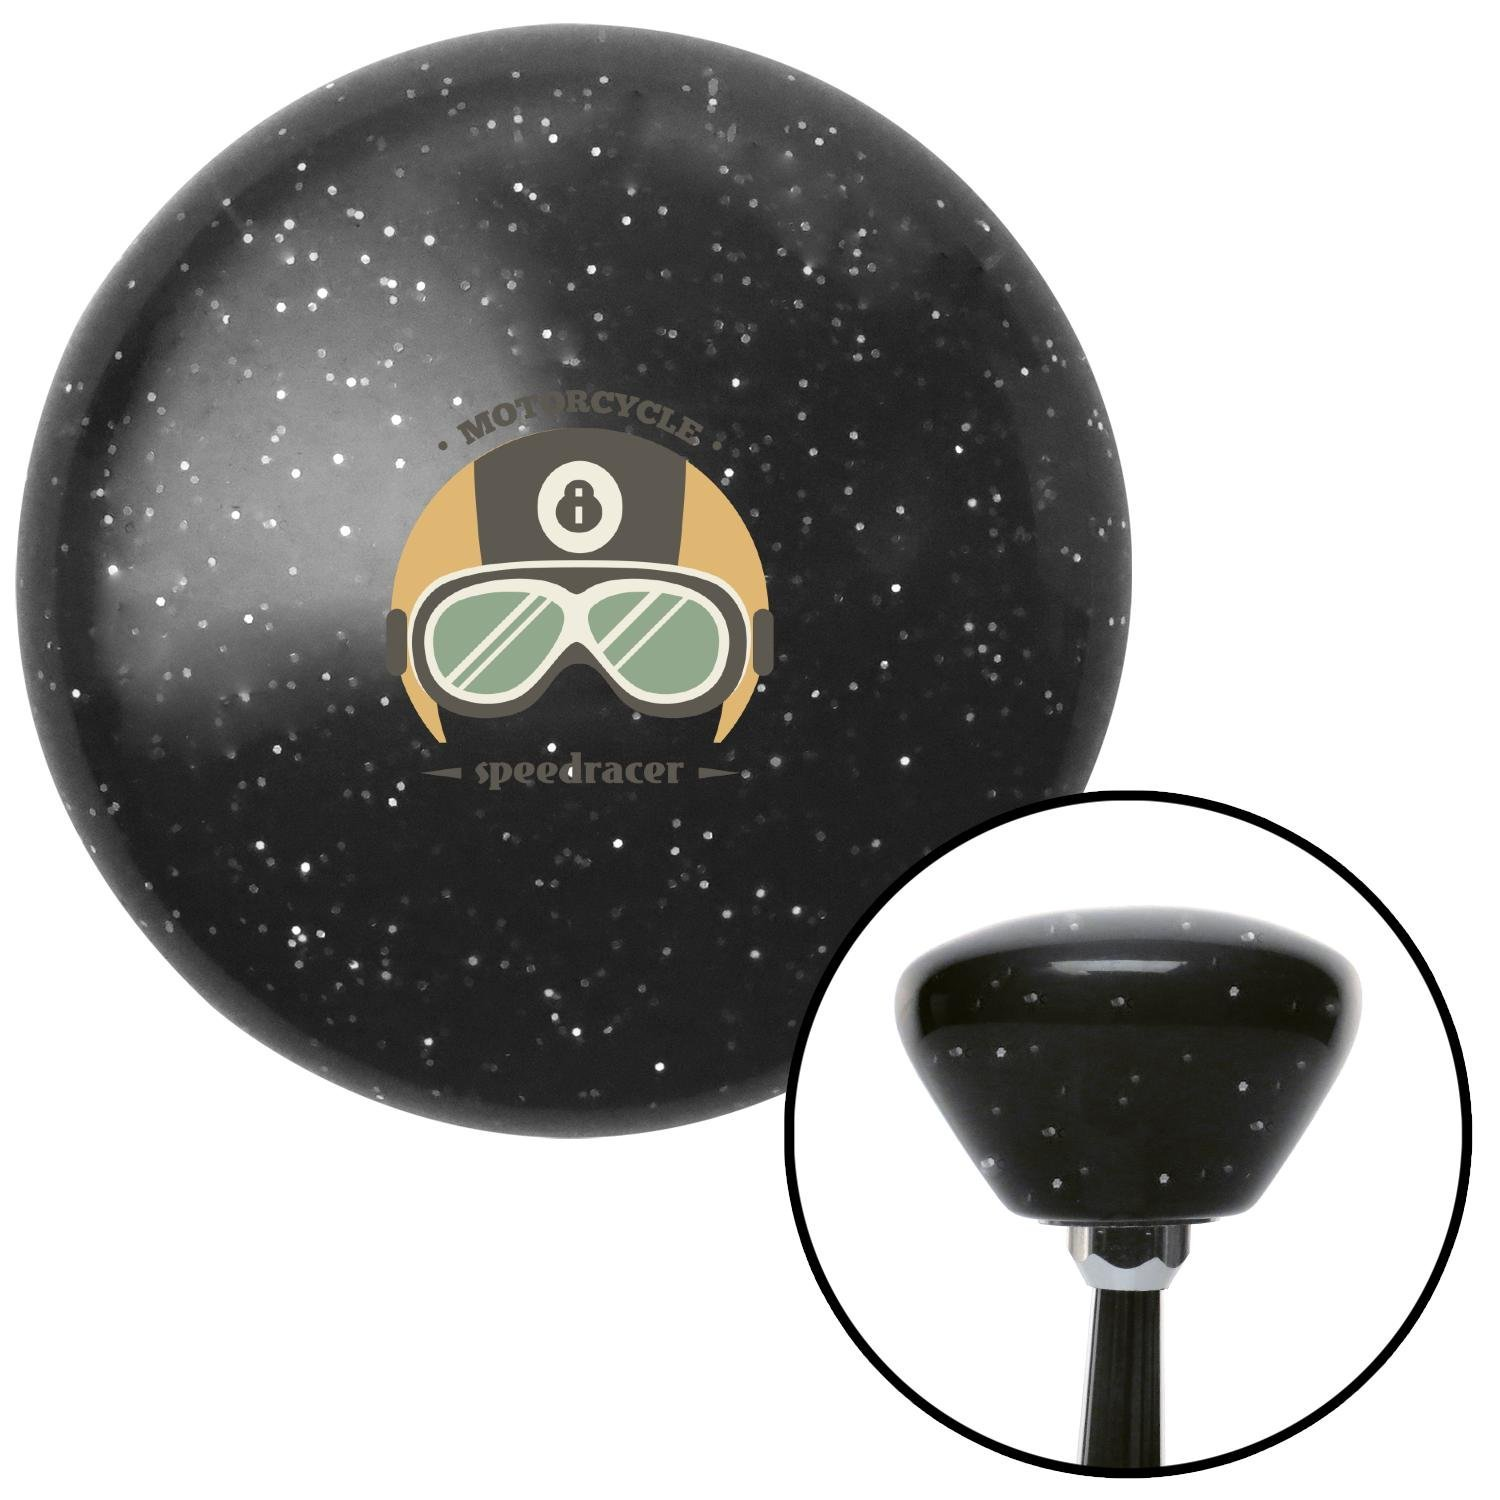 American Shifter 287364 Shift Knob Motorcycle Speedracer Black Retro Metal Flake with M16 x 1.5 Insert